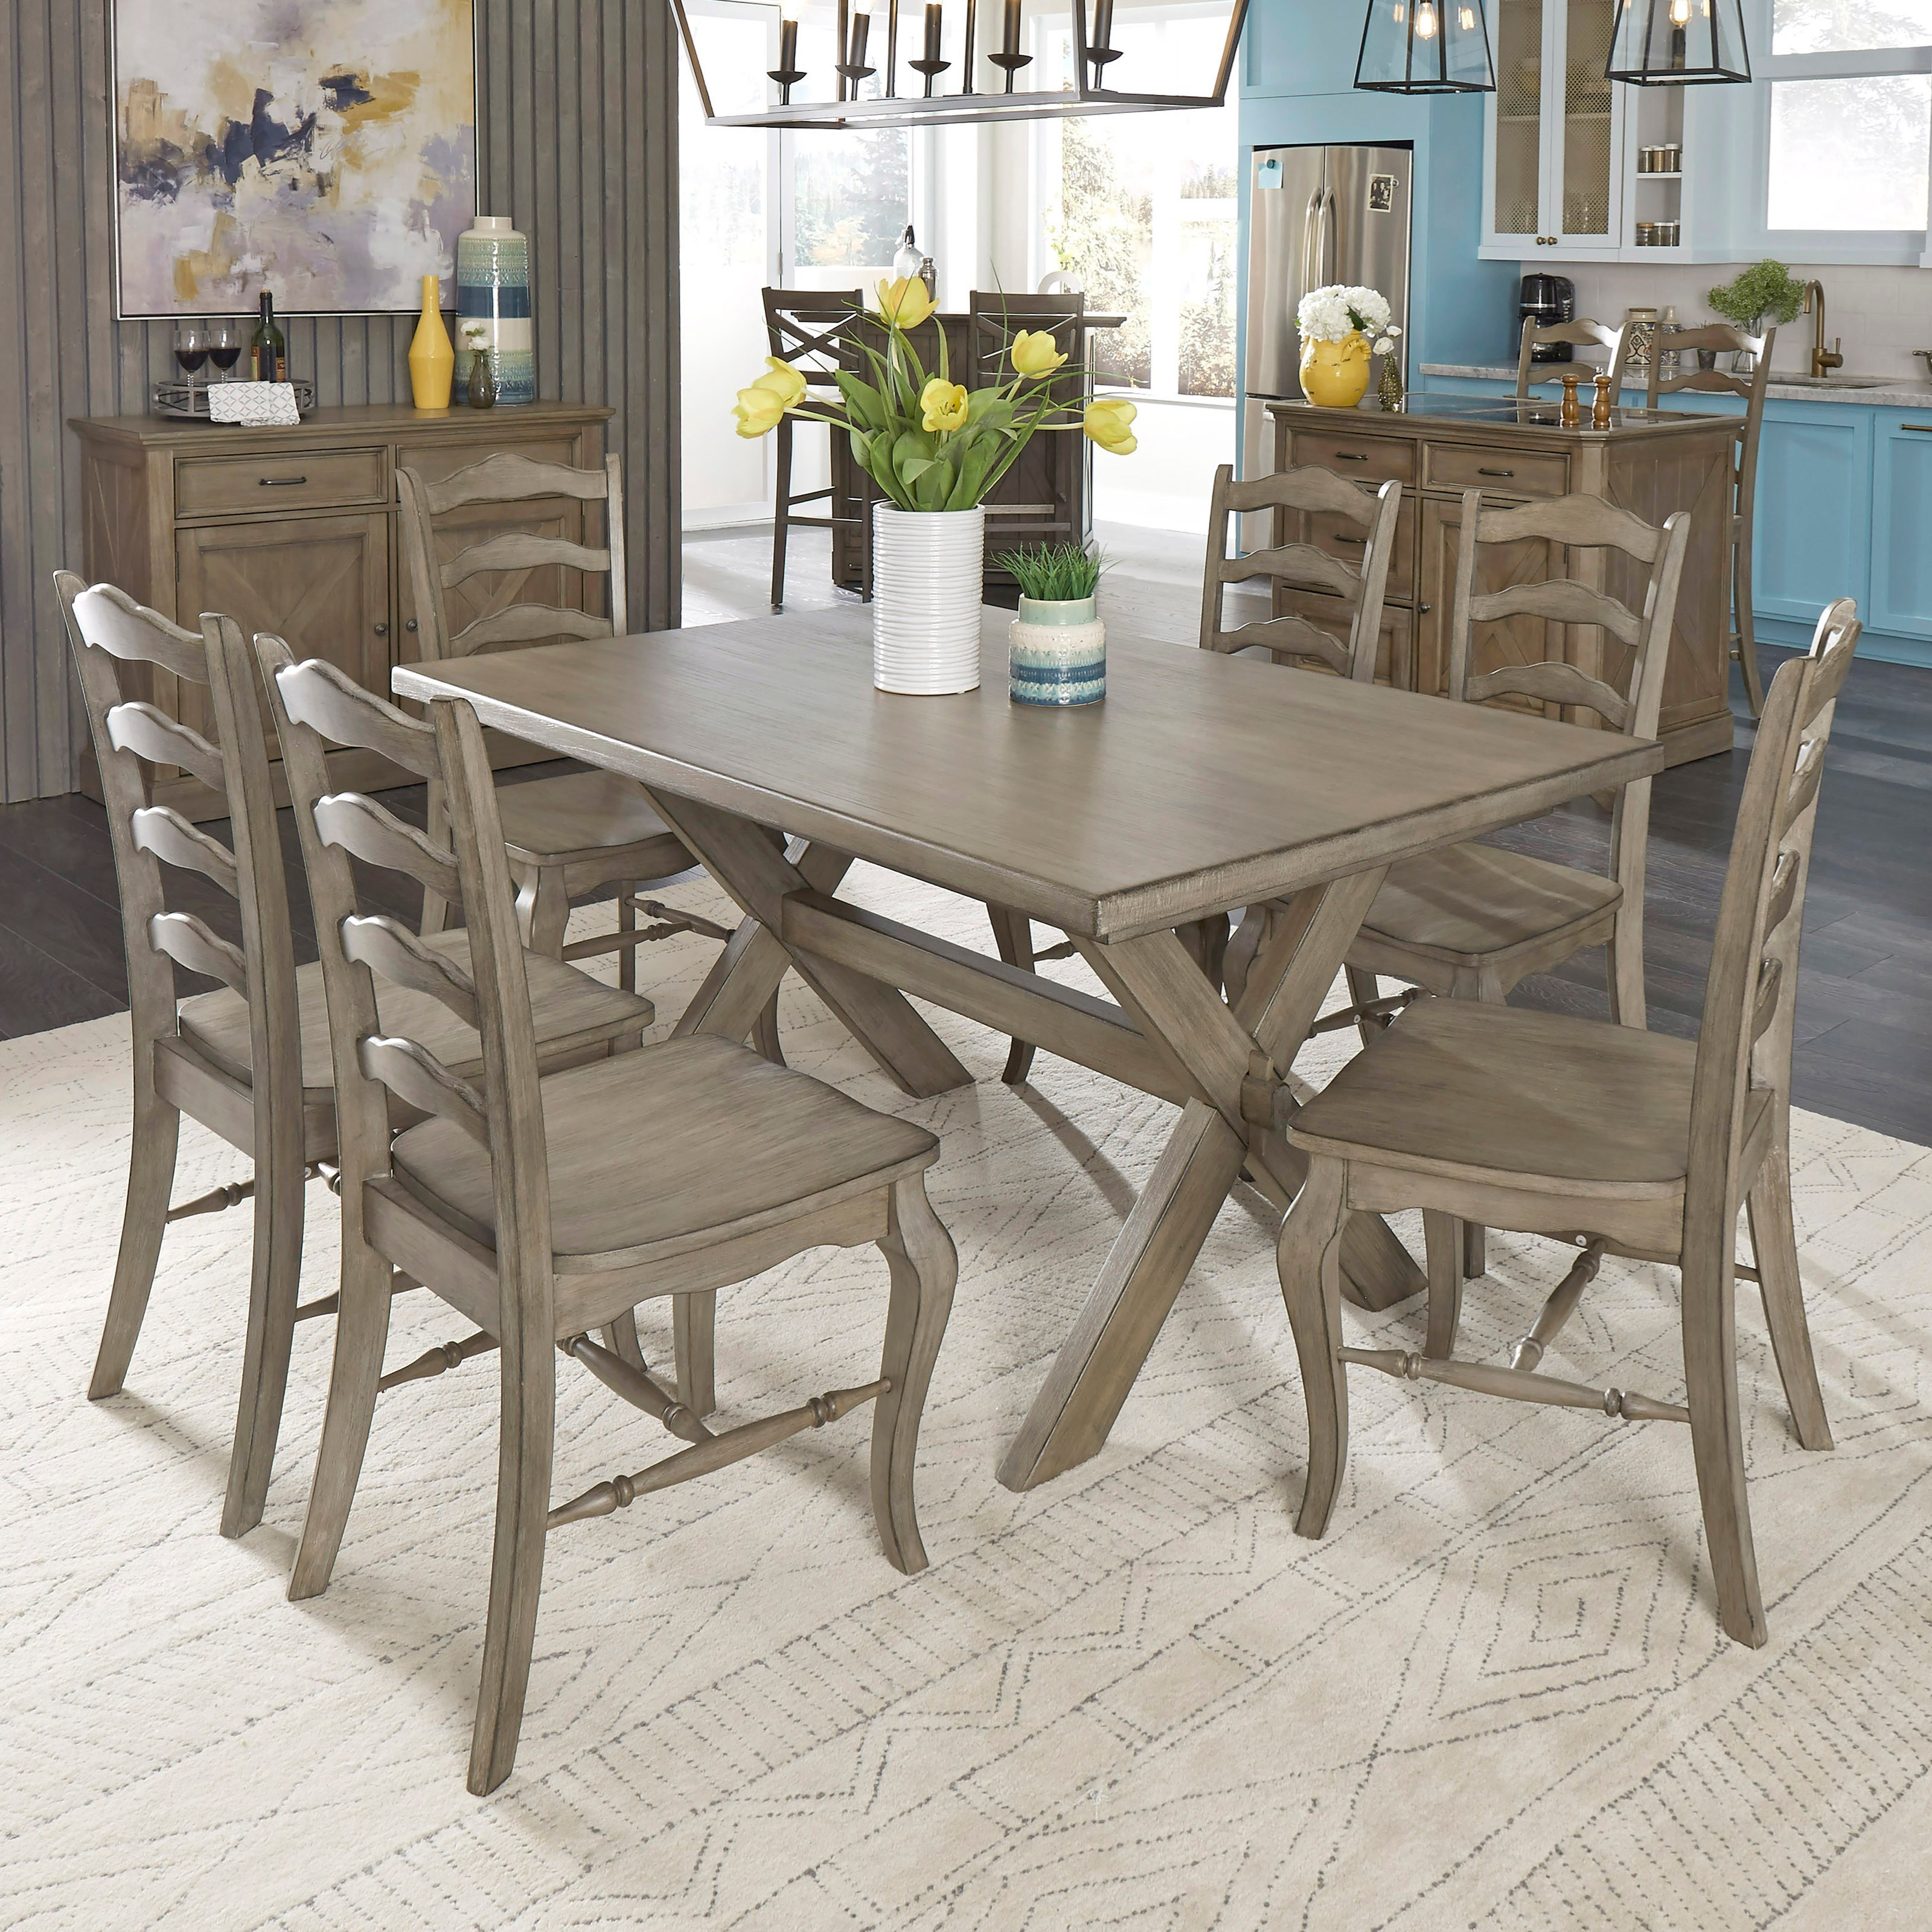 Mountain Lodge 7-Piece Table and Chair Set by Homestyles at Northeast Factory Direct